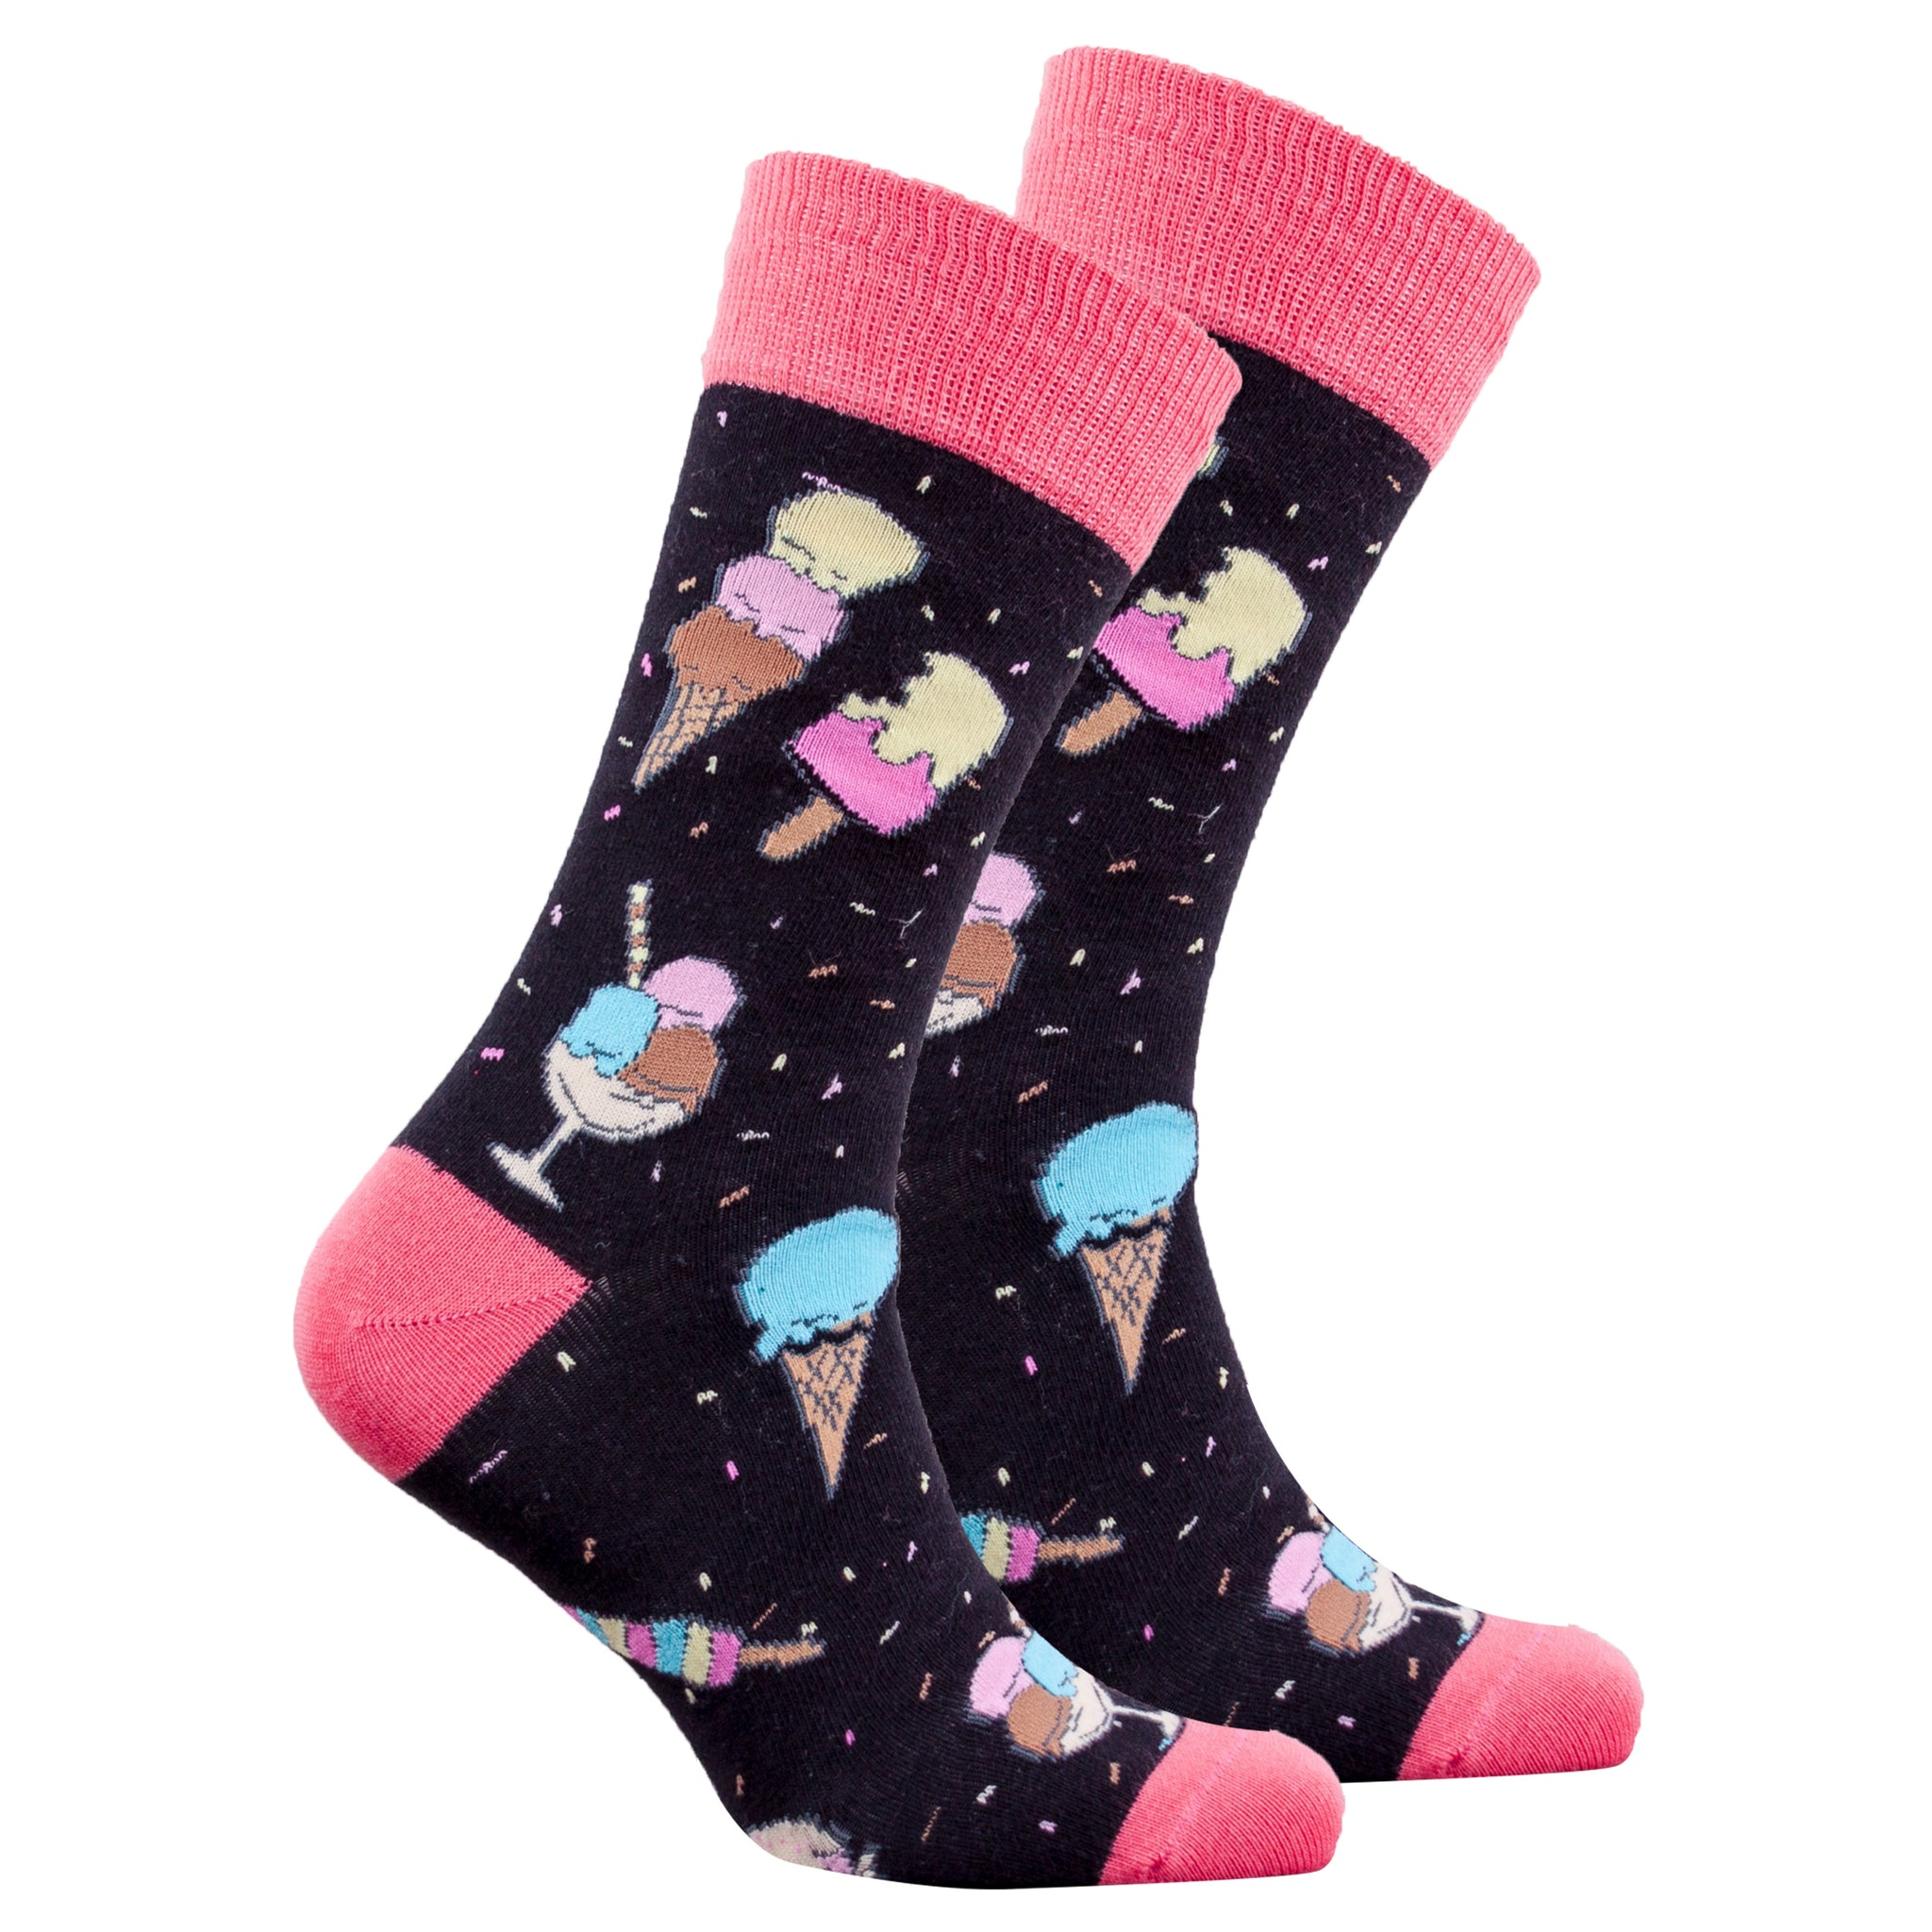 Men's Ice Cream Paradise Socks